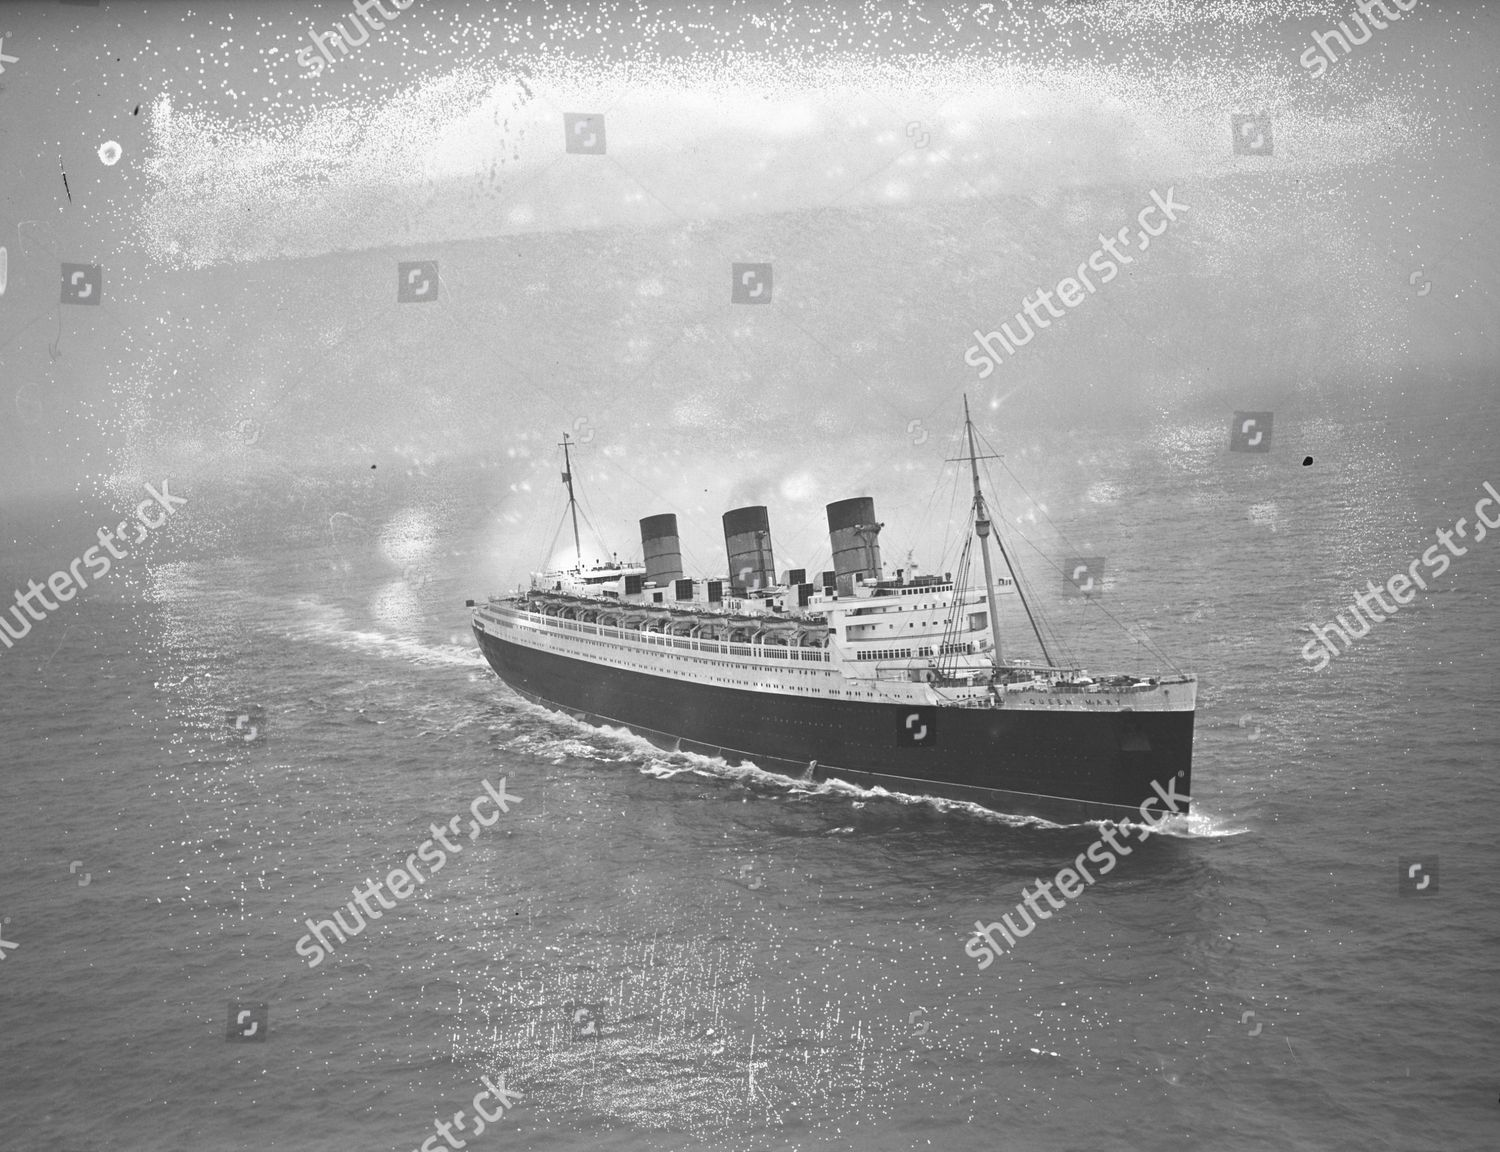 Foto de stock de The Rms Queen Mary Liner Nears Southampton Water. The Queen Mother Is On Board Returning From America. Glass Neg Rms Queen Mary Is A Retired Ocean Liner That Sailed Primarily In The North Atlantic Ocean From 1936 To 1967 For The Cunard Line (known As